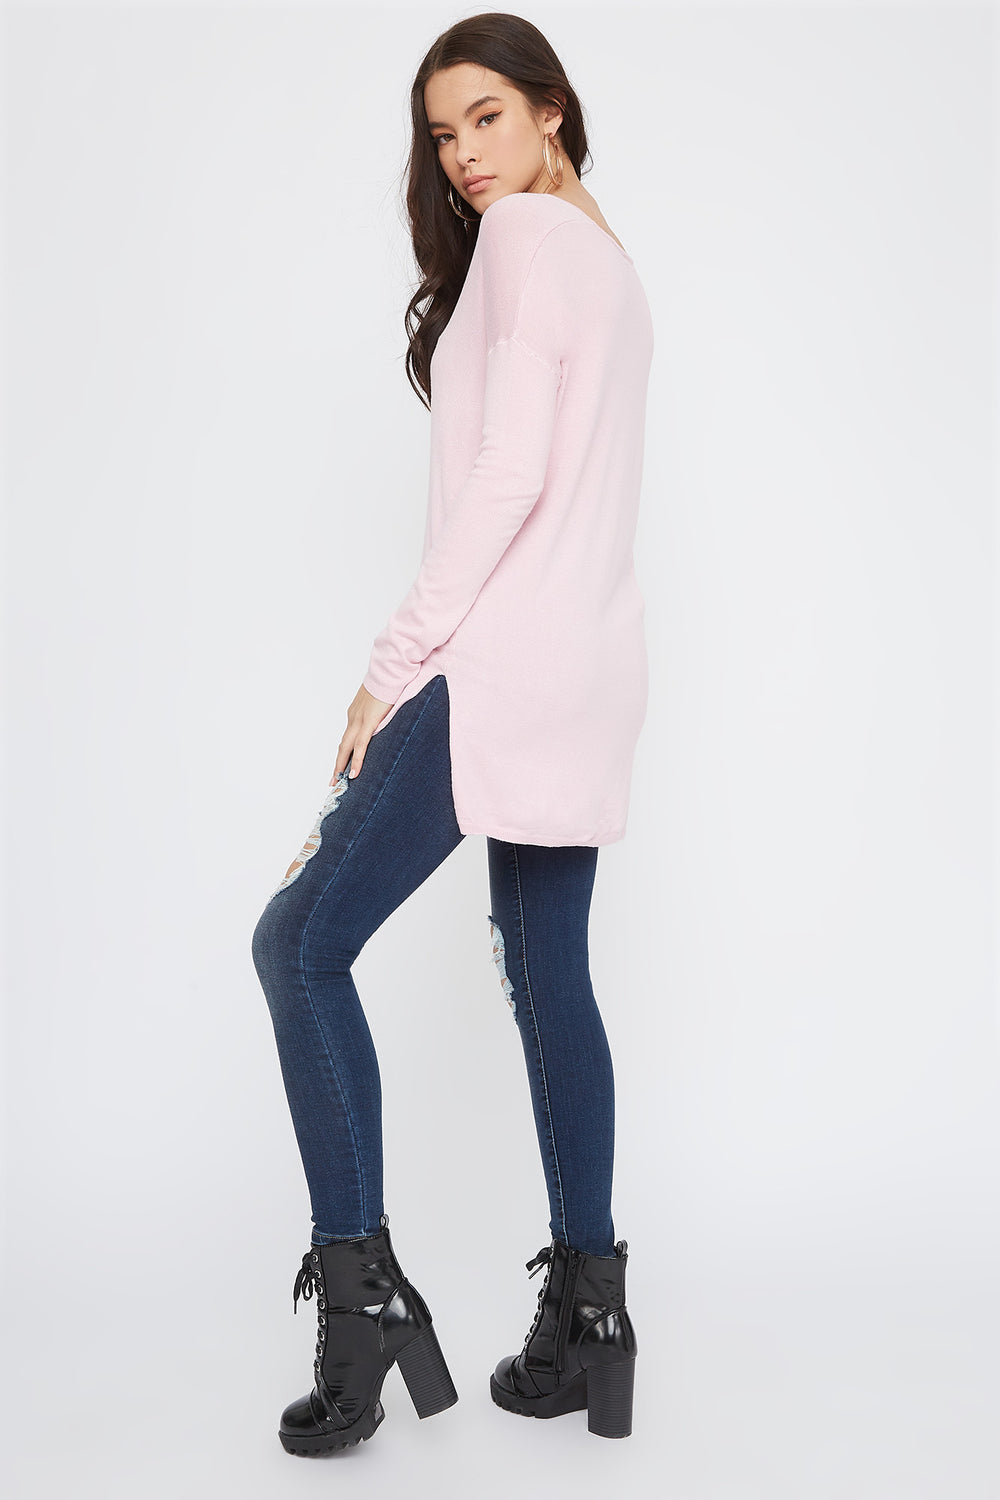 Knit V-Neck High-Low Long Sleeve Pink